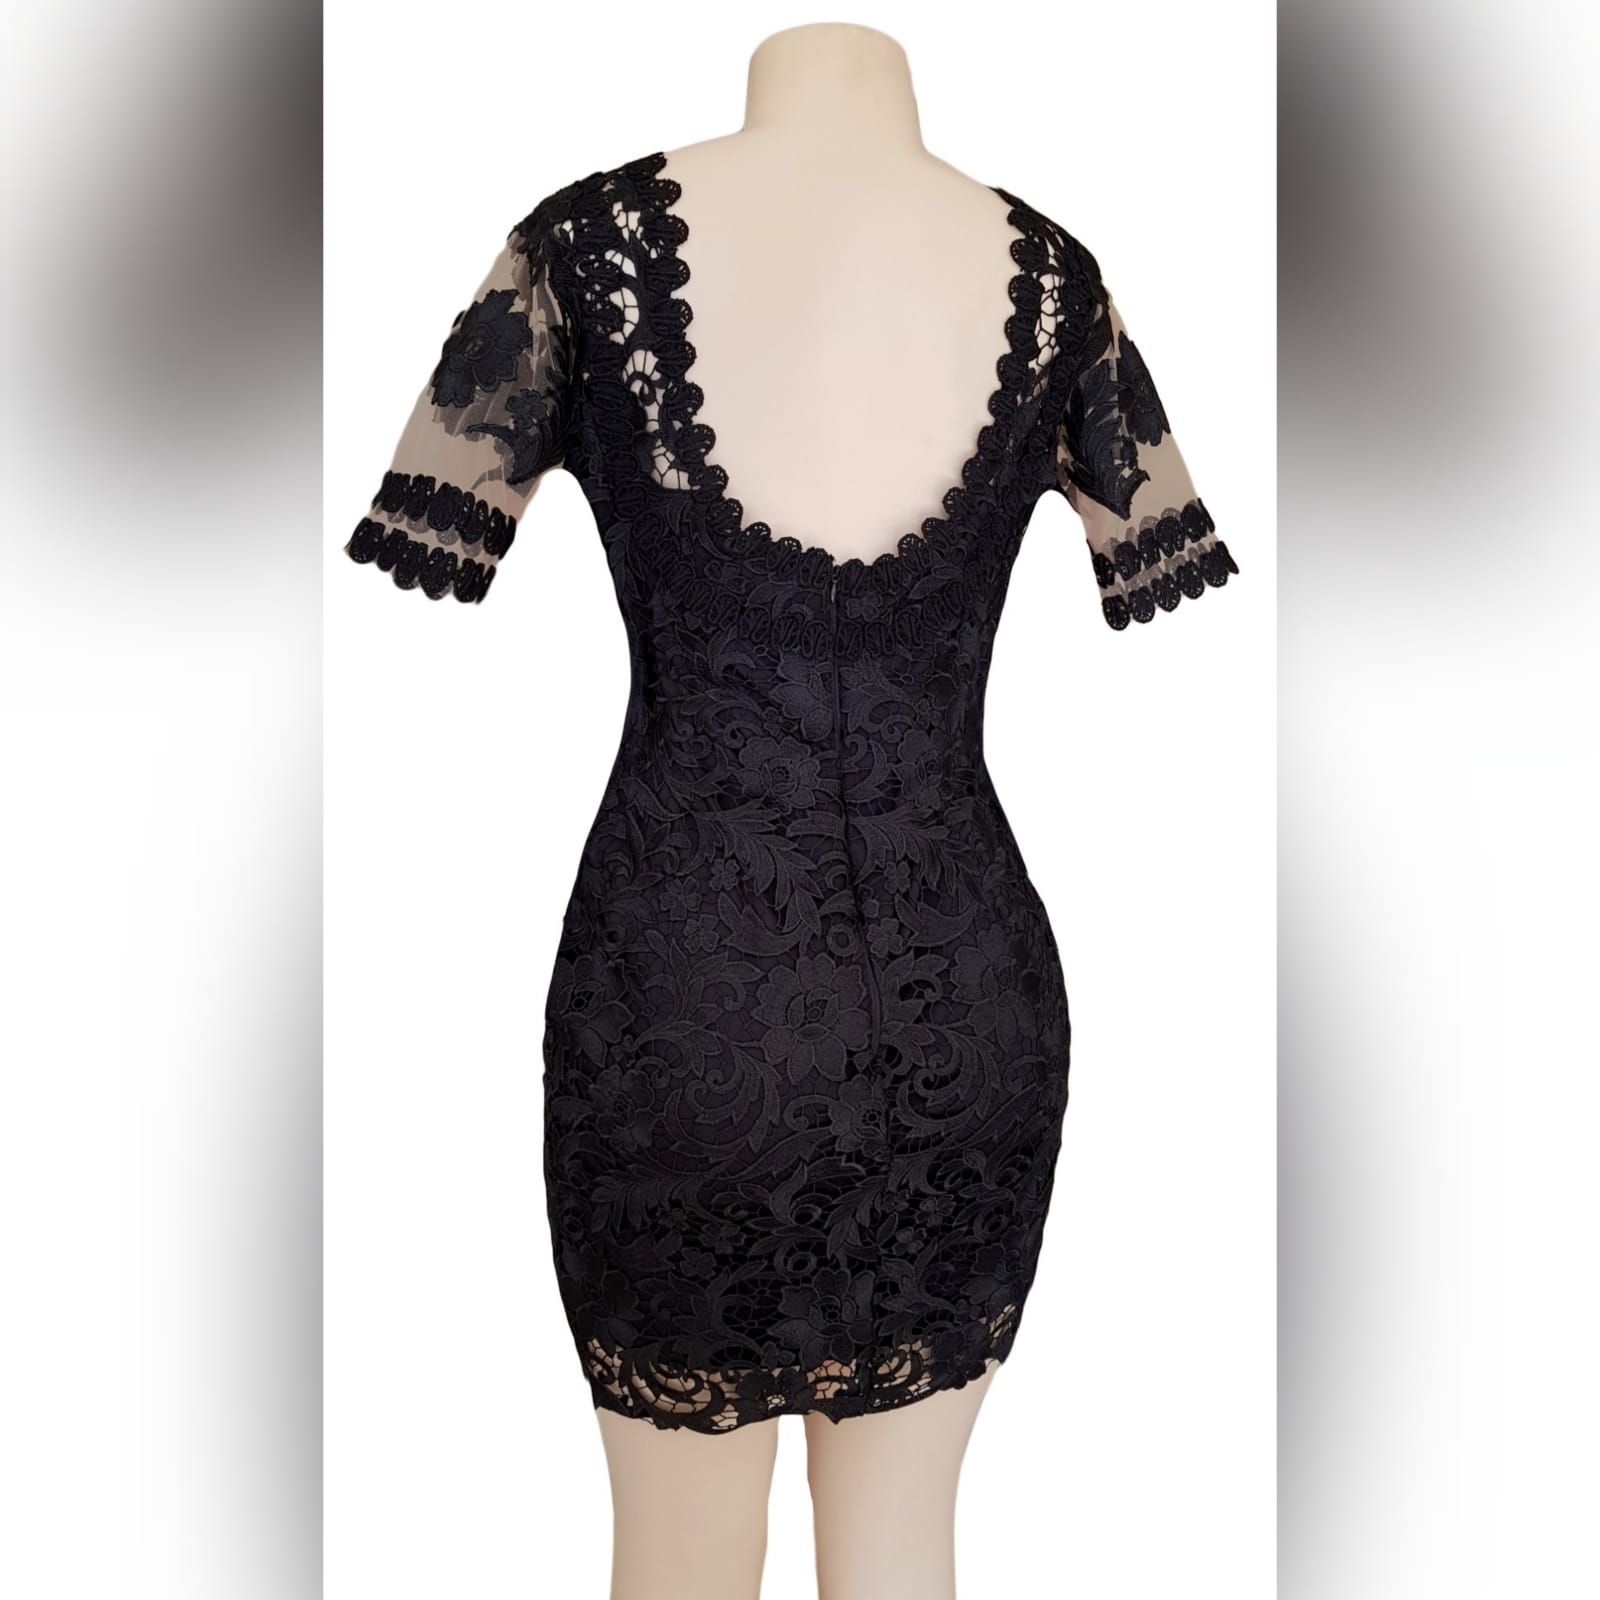 Black short guipure lace evening dress 2 black short guipure lace evening dress with a rounded front and back neckline. With sheers short sleeves detailed with lace.